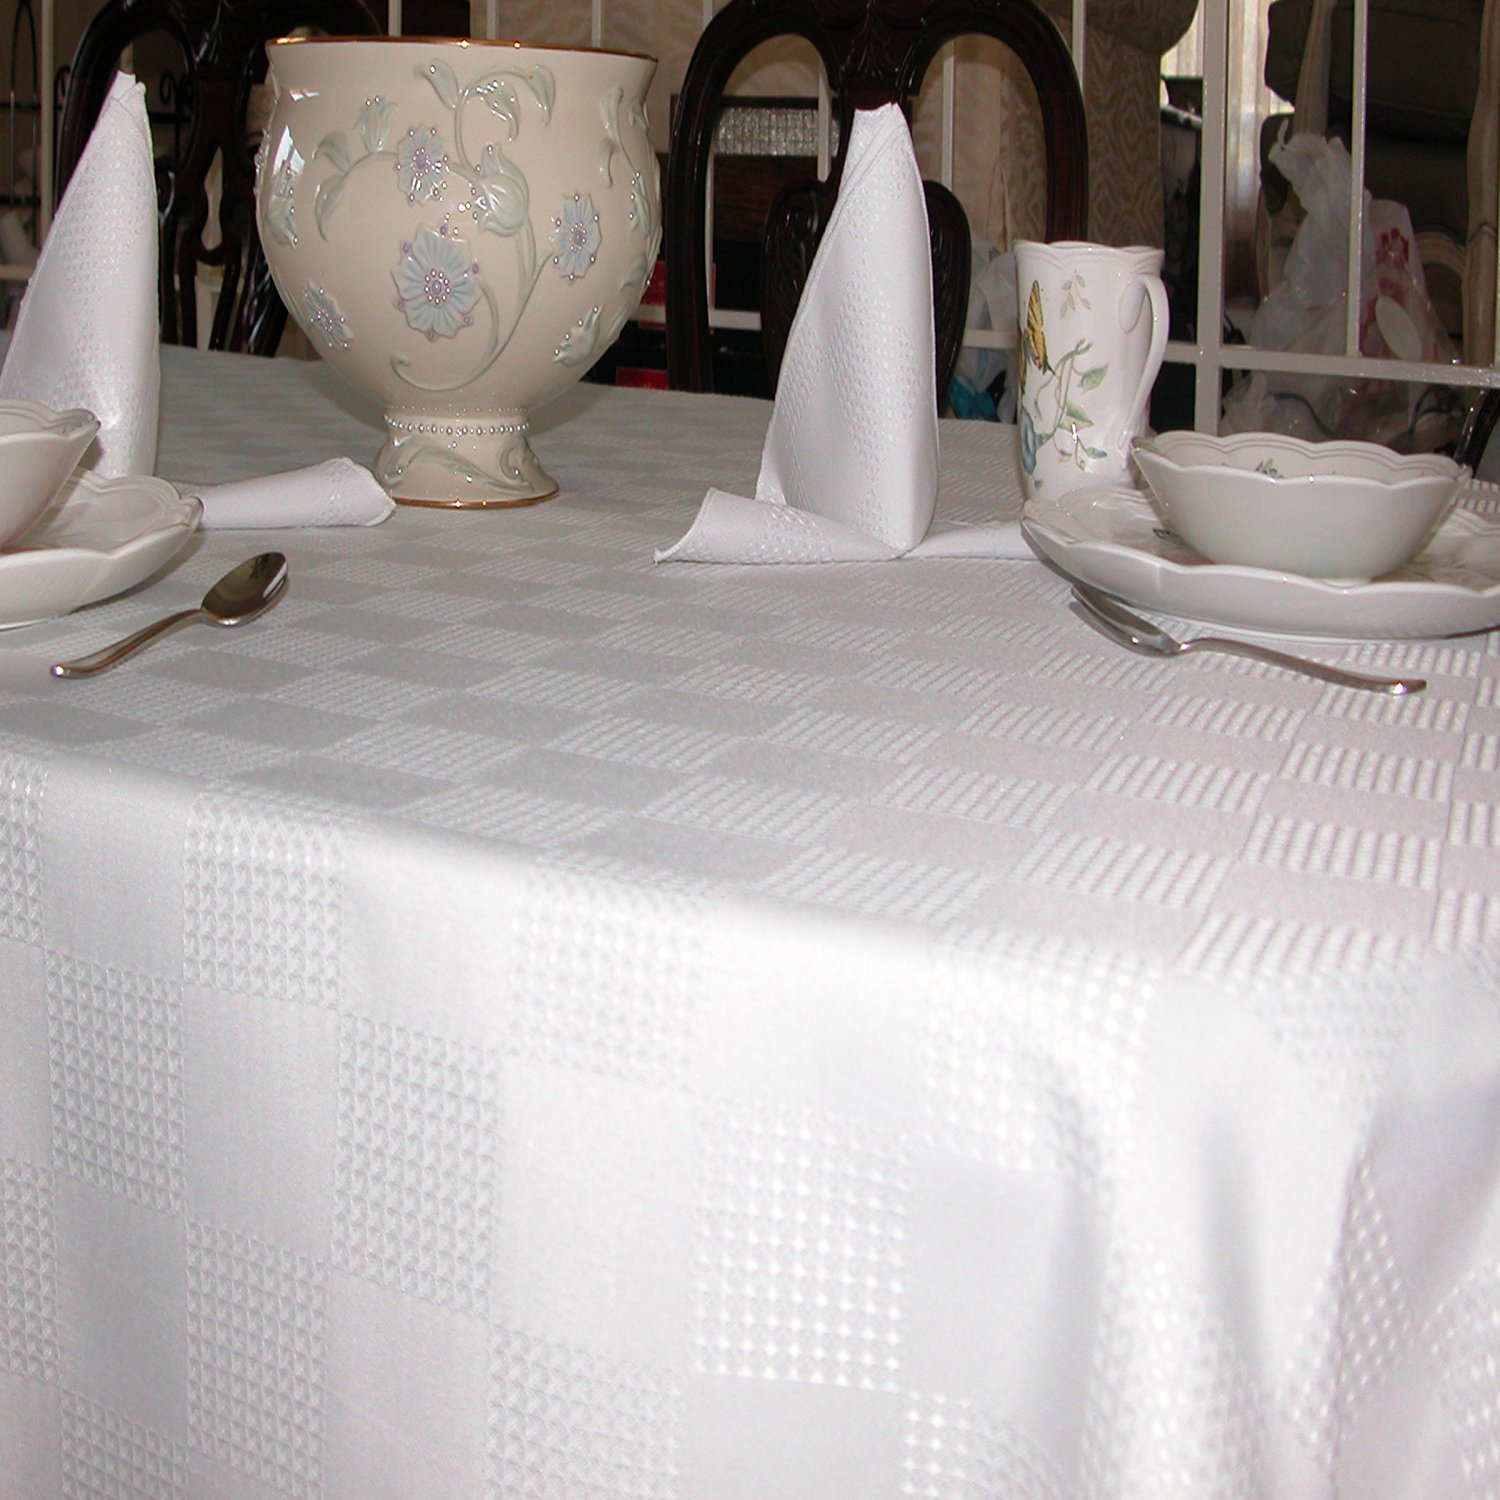 Tablecloths Linen, Special Dobby Weave Fabric, White, 100% Polyester, Machine Washable (60x144 Inches Rectangular)